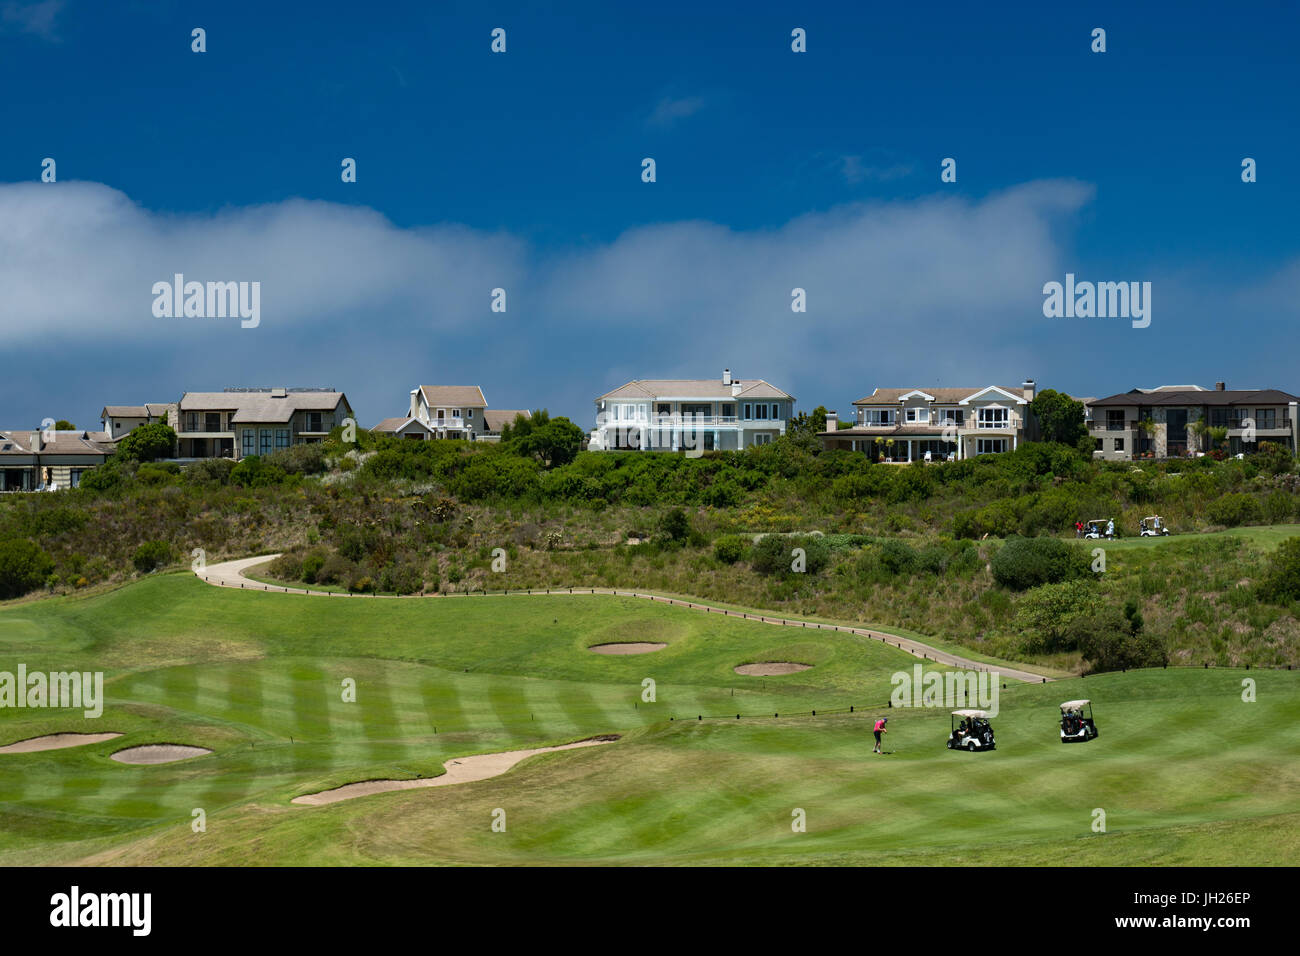 Midday golf being played at the Pezula Golf Course, Kynsna, South Africa, Africa - Stock Image